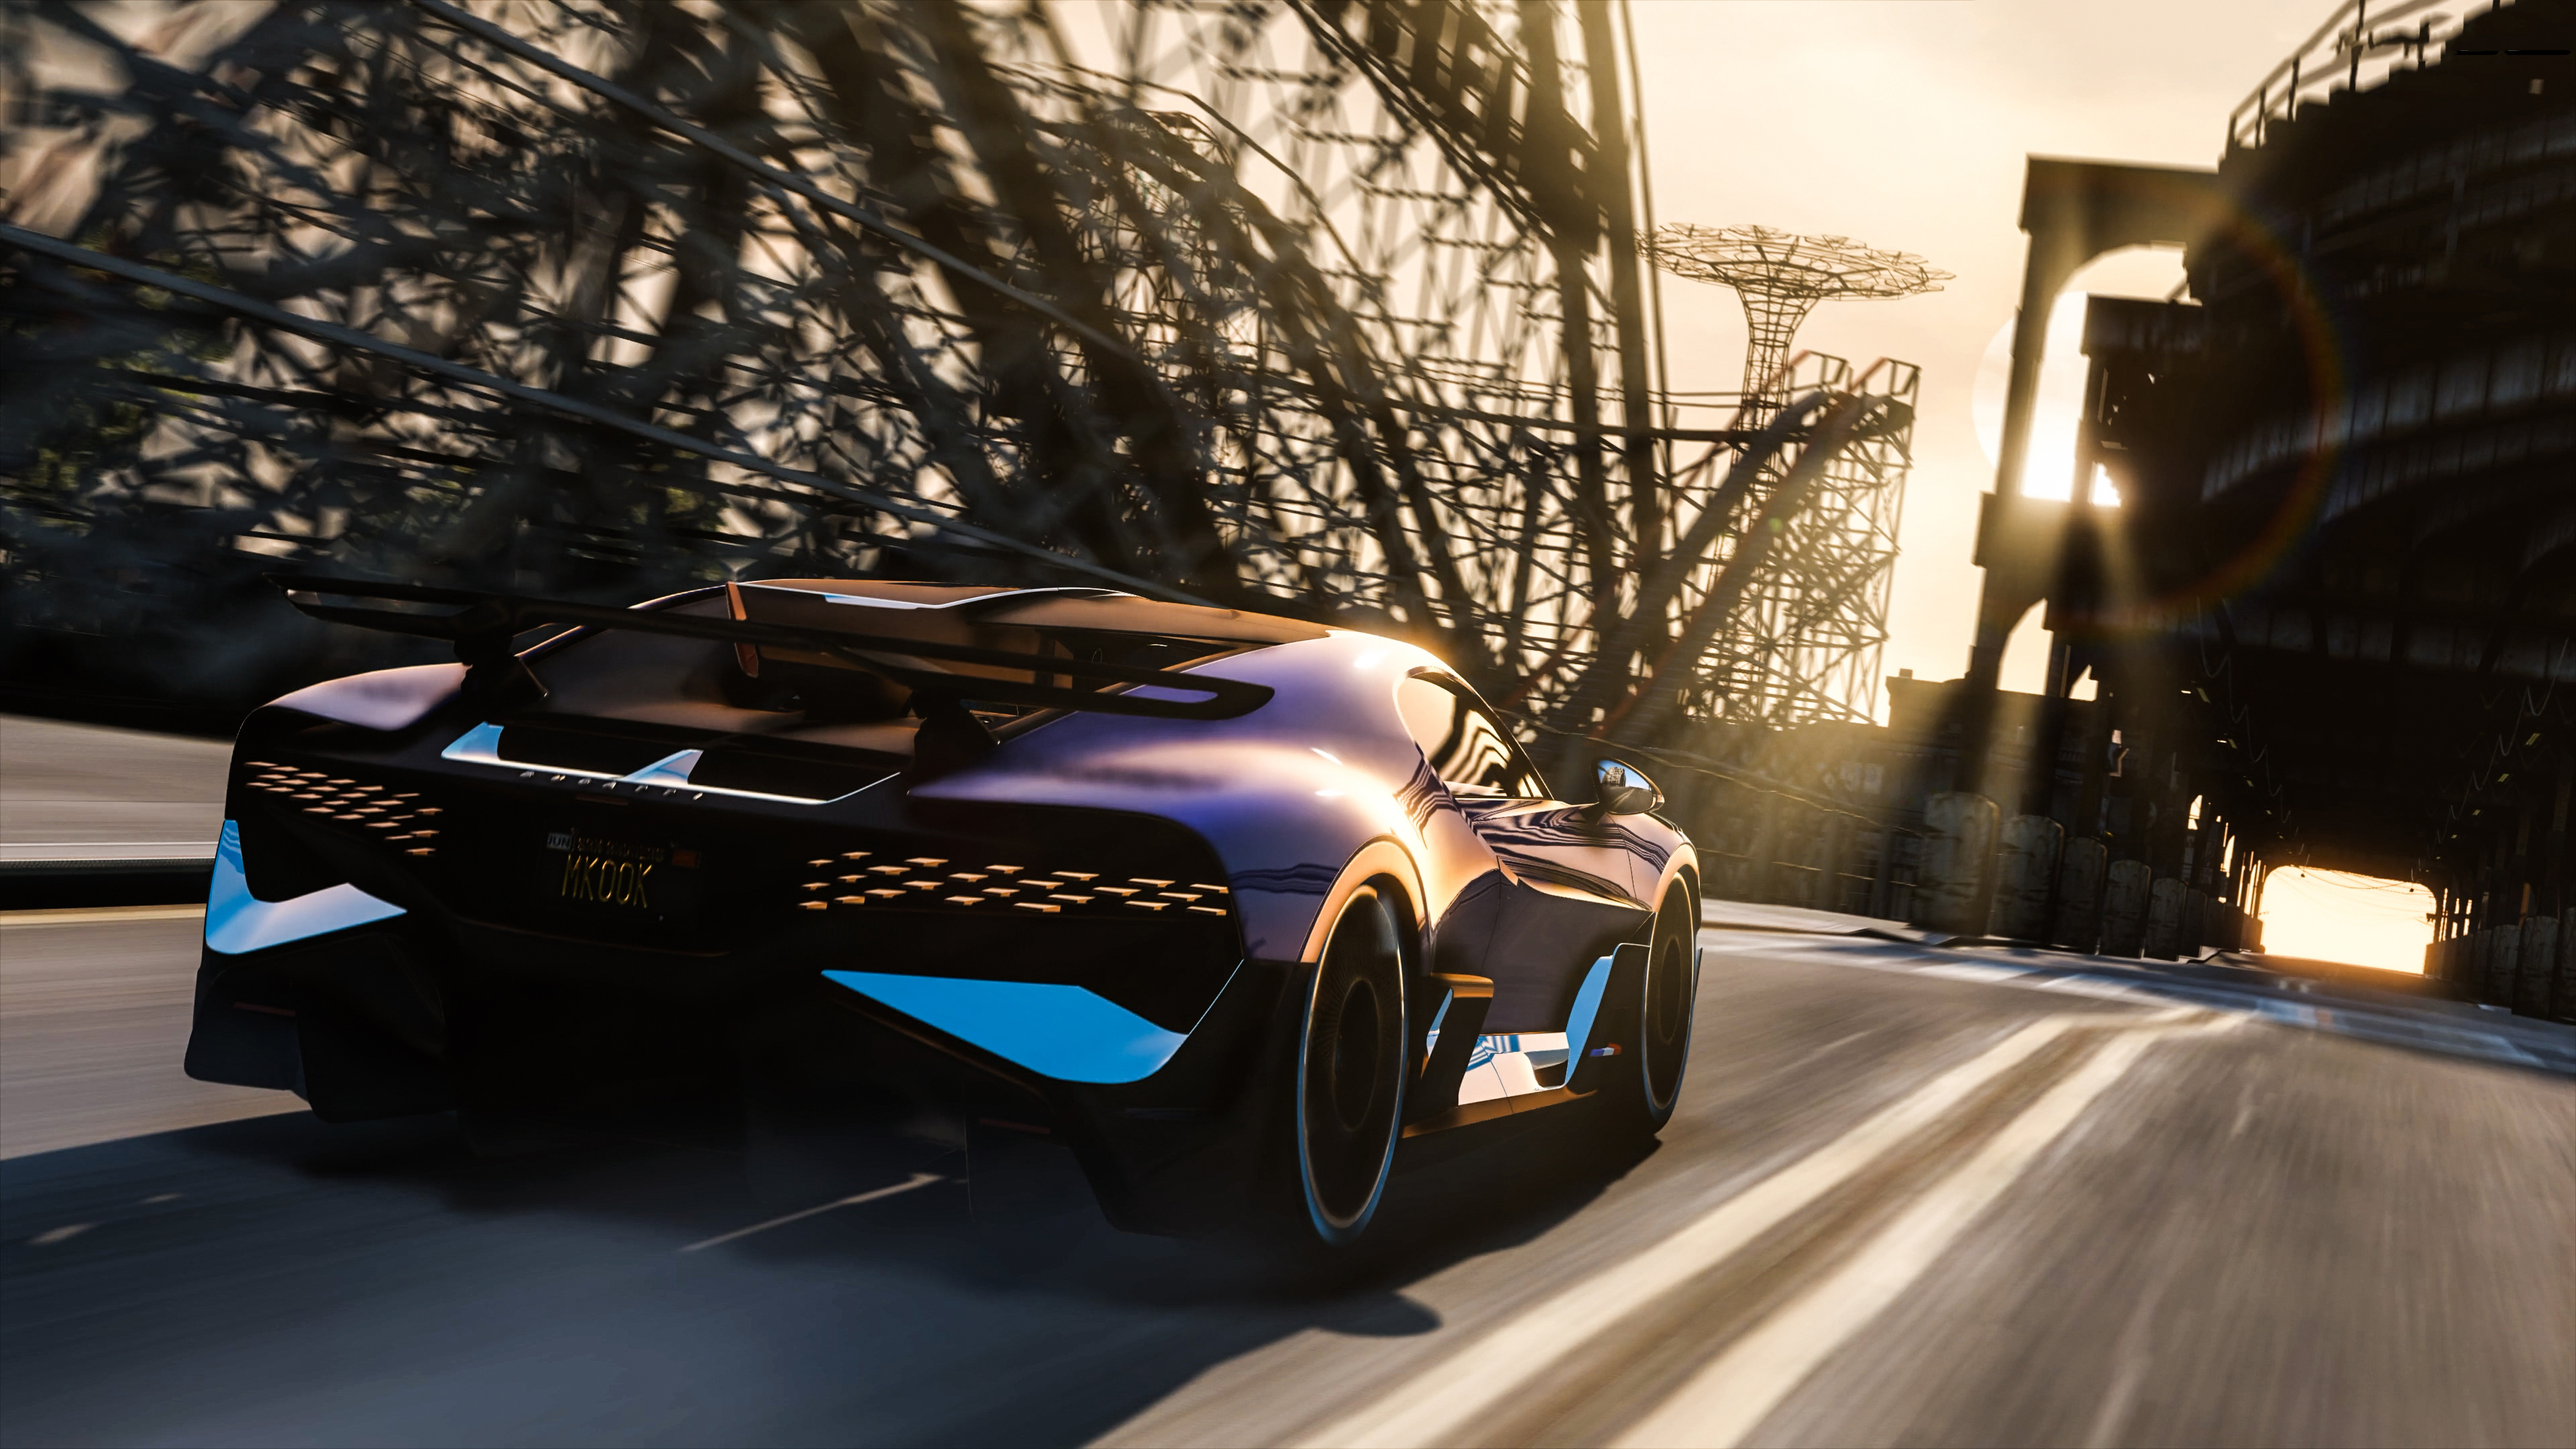 Gta V Bugatti Divo 4k Hd Games 4k Wallpapers Images Backgrounds